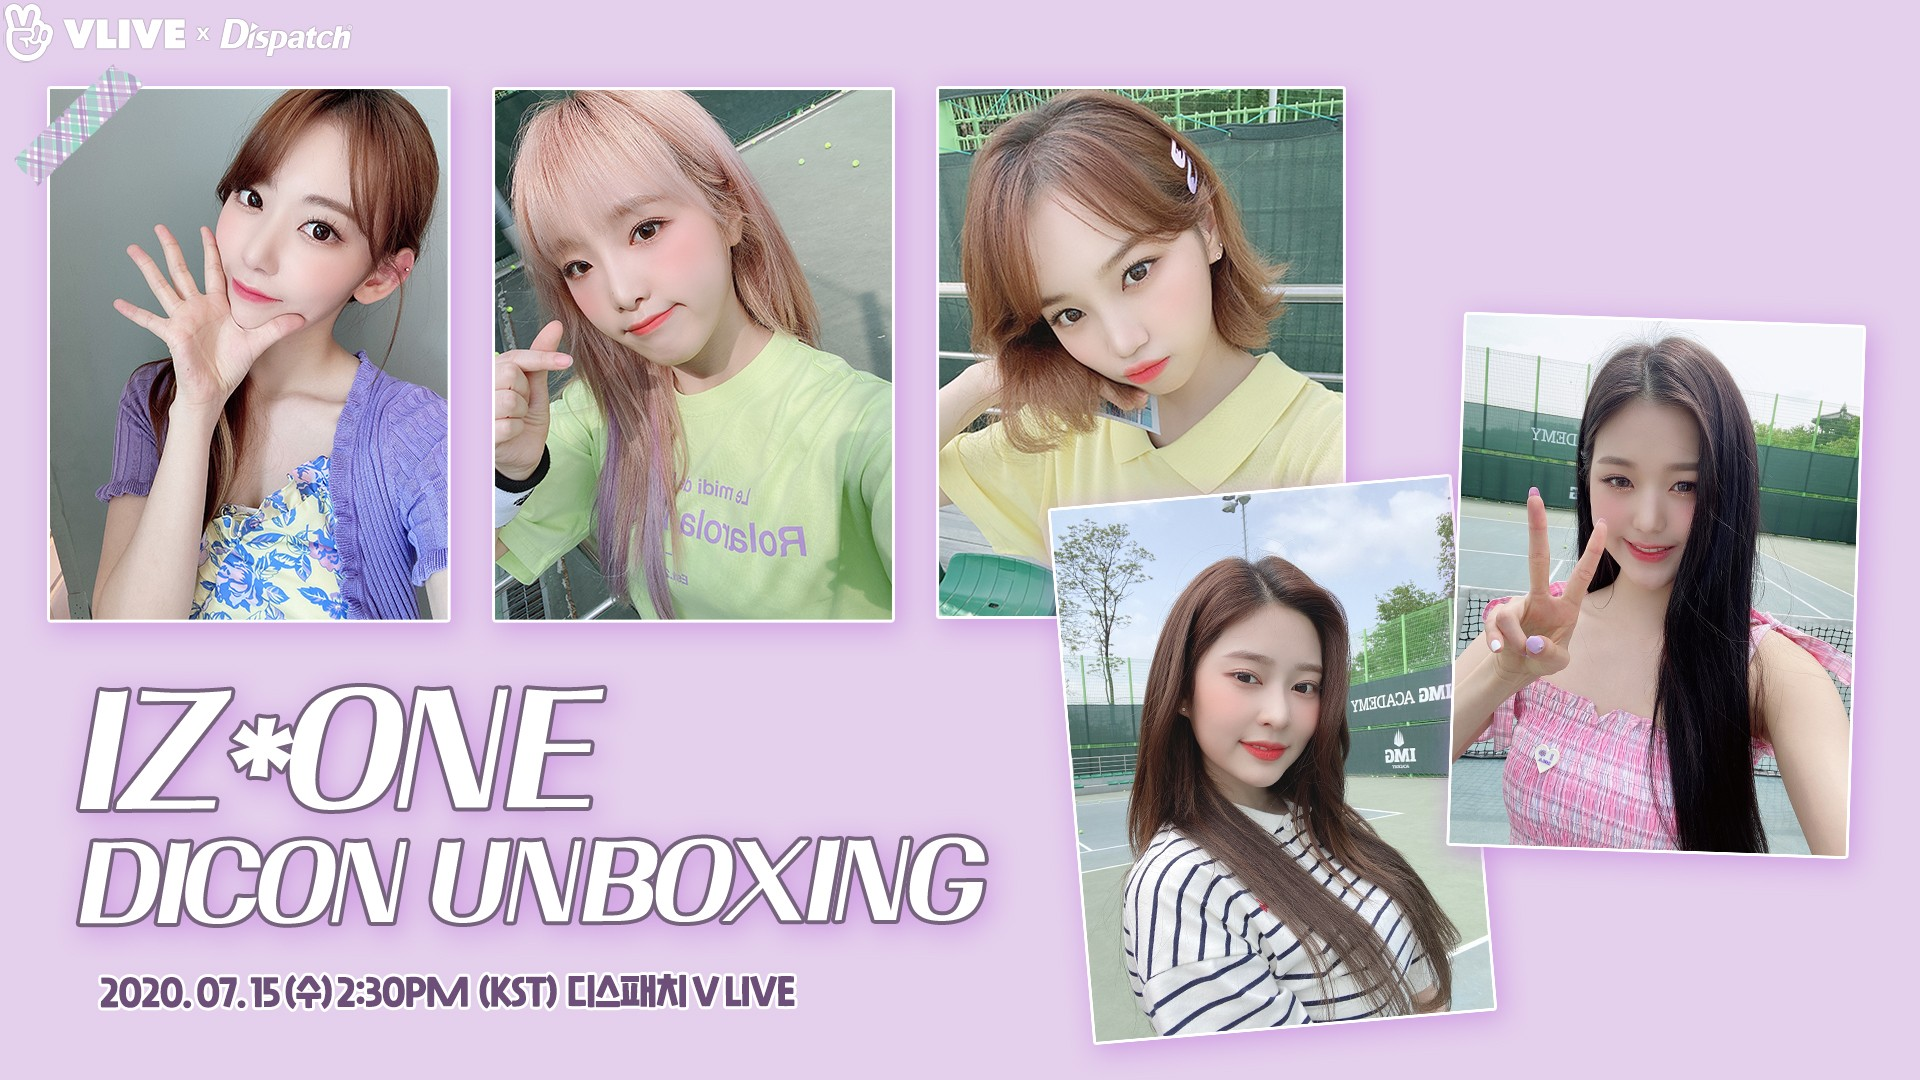 IZ*ONE DICON UNBOXING